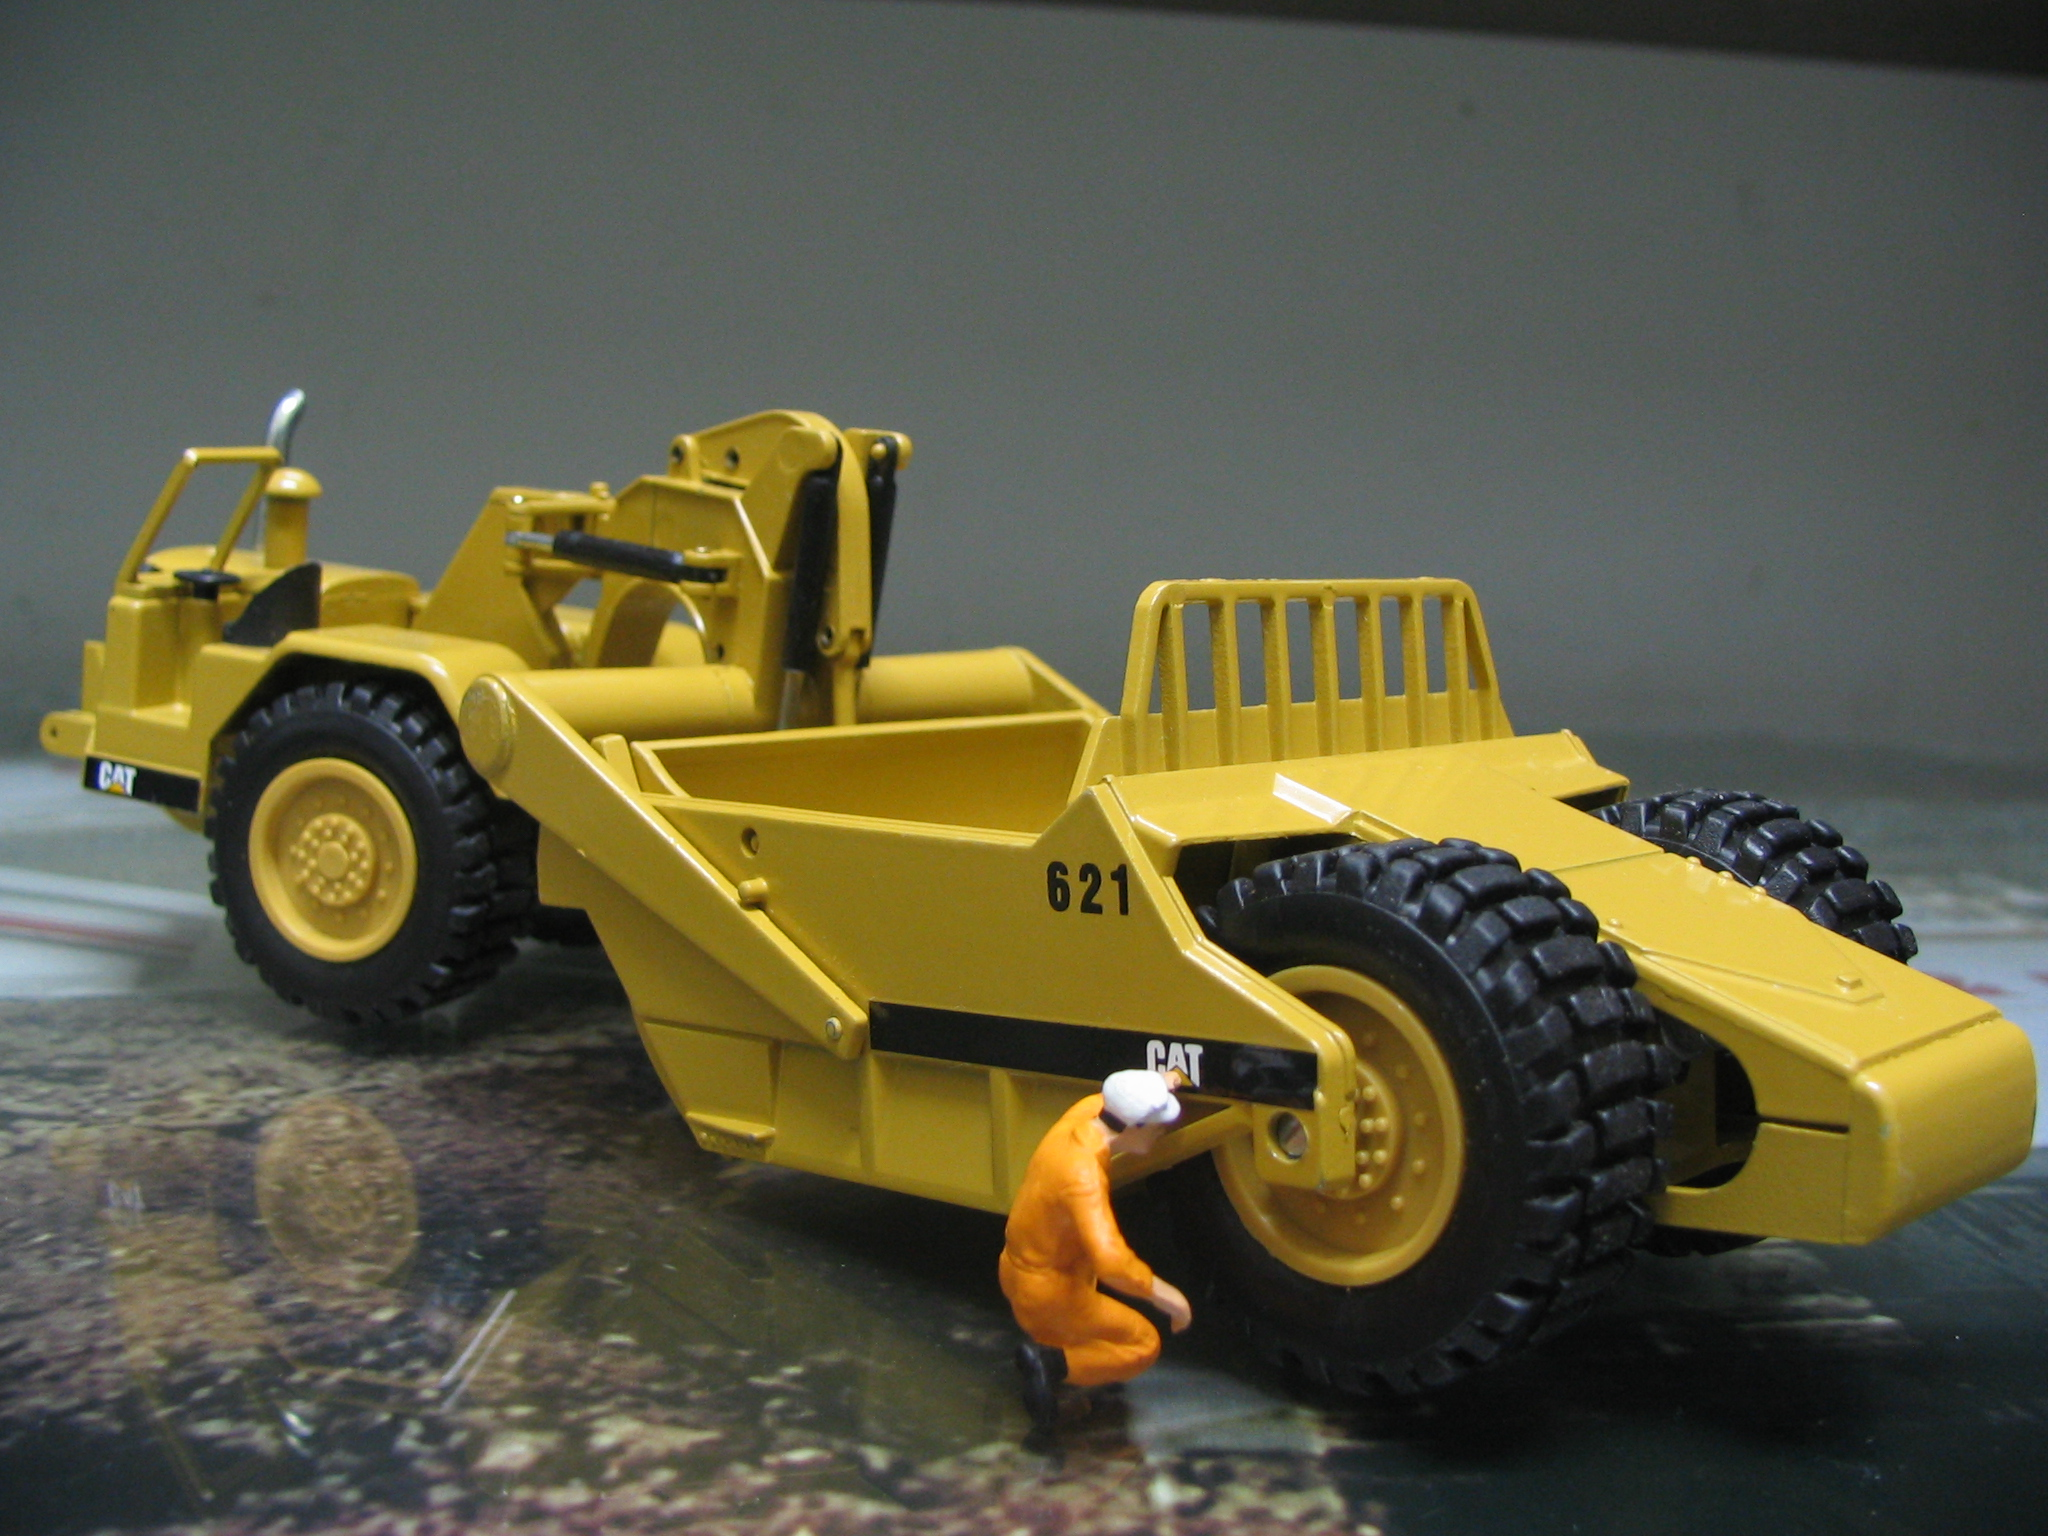 Caterpillar 621 photo - 2